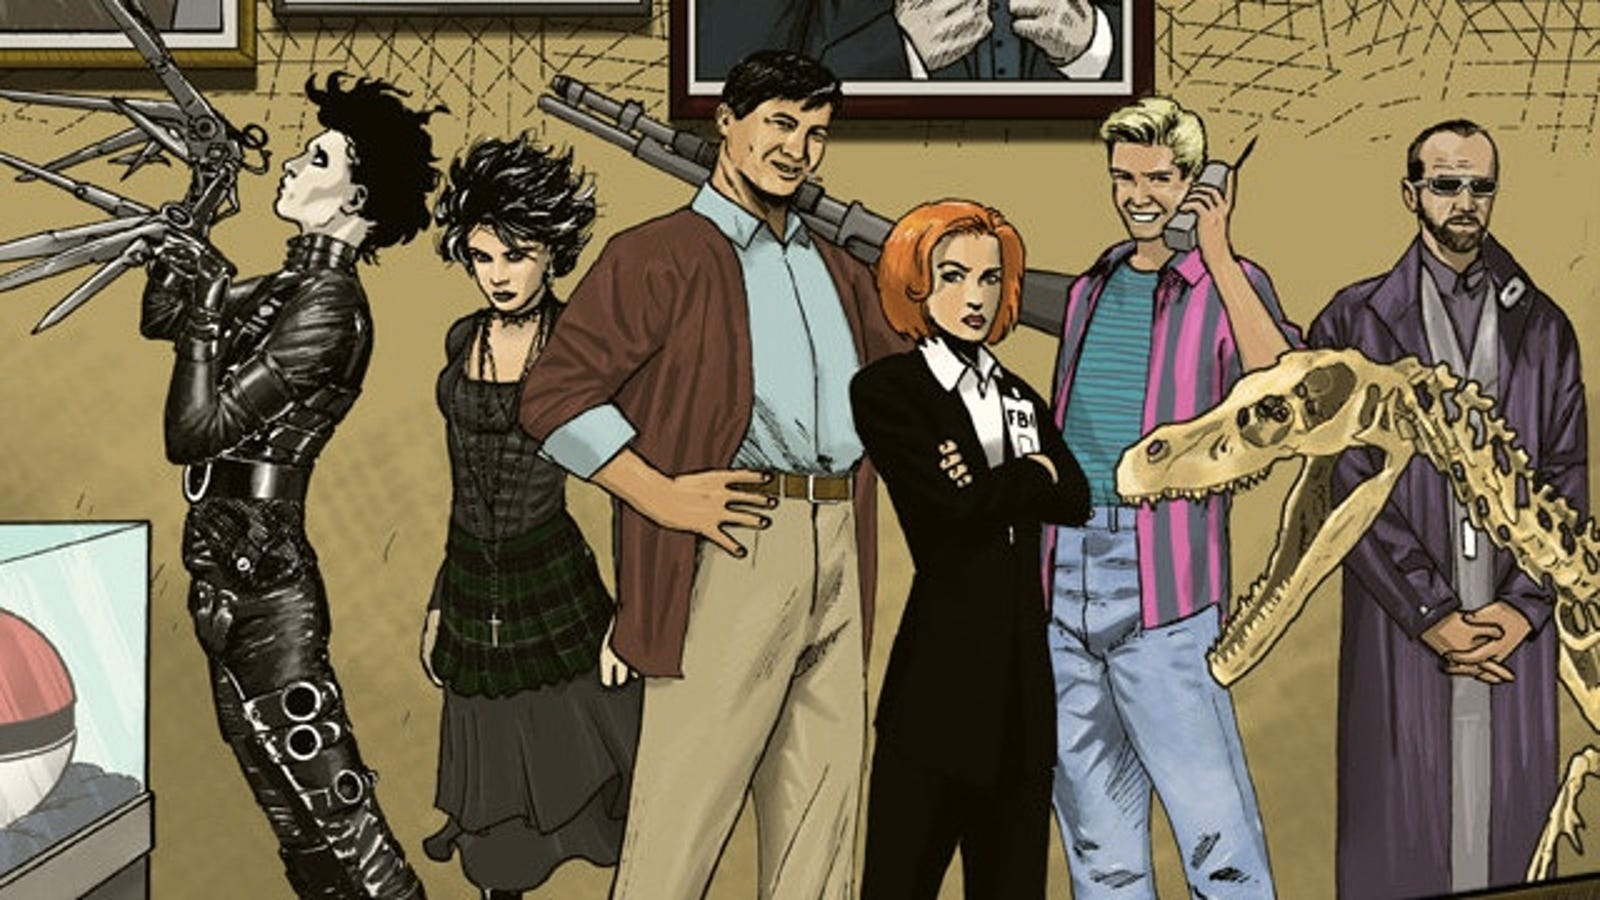 The League Of Extraordinary Gentlemen 1996 Would Include Dana Scully And Zack Morris